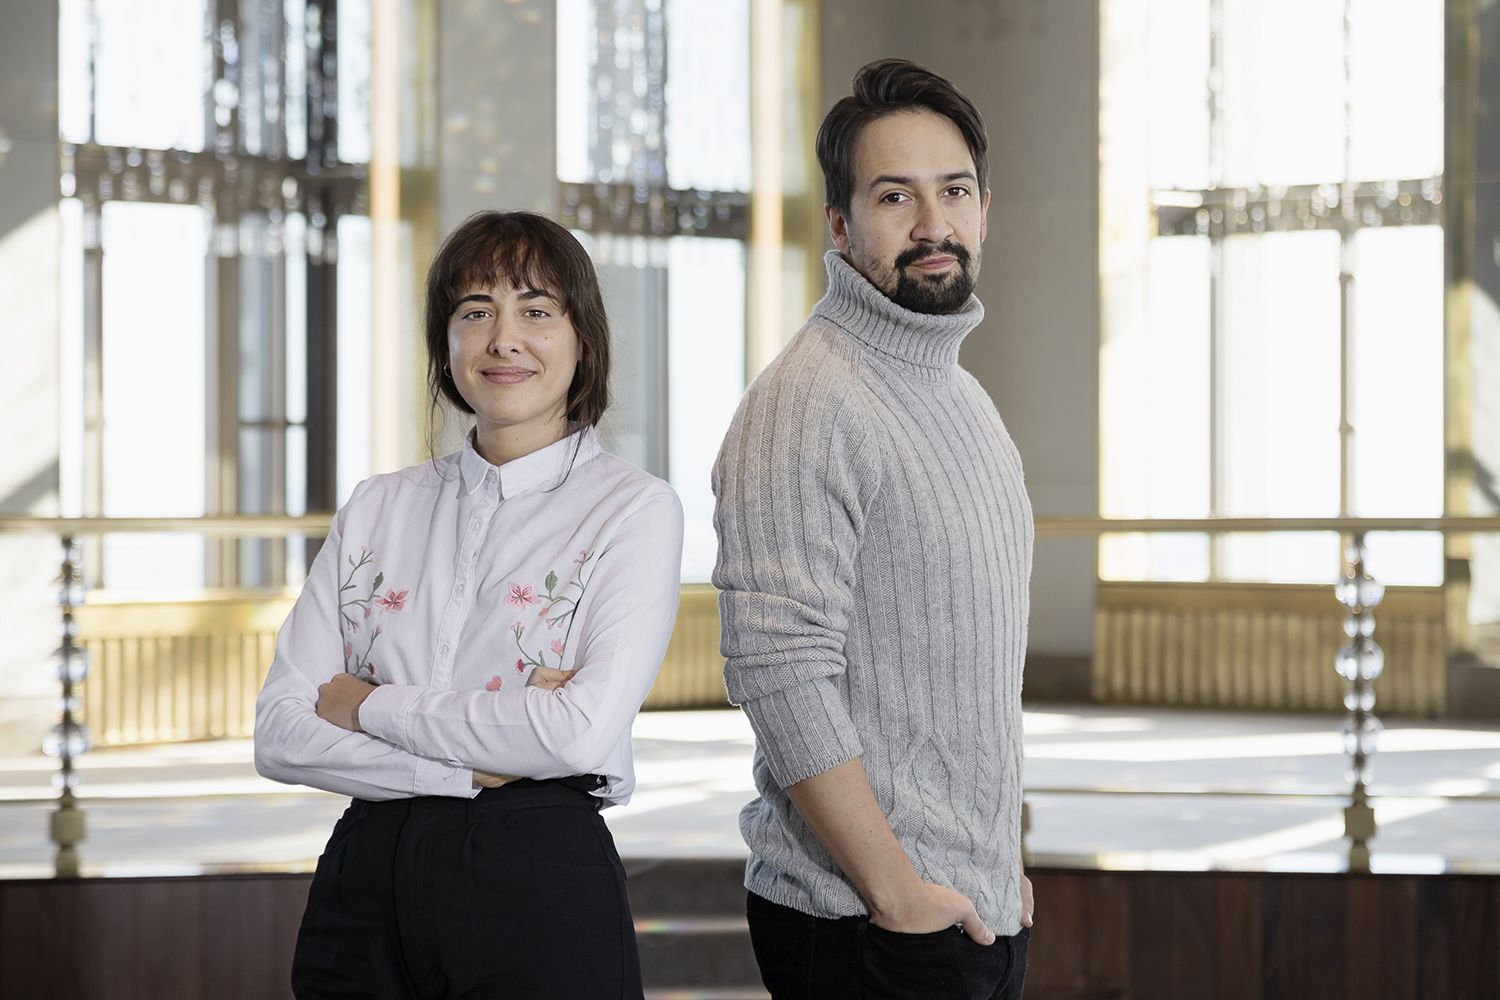 Agustina San Martín finalist in Open Category and Lin Manuel Miranda mentor in Open Category